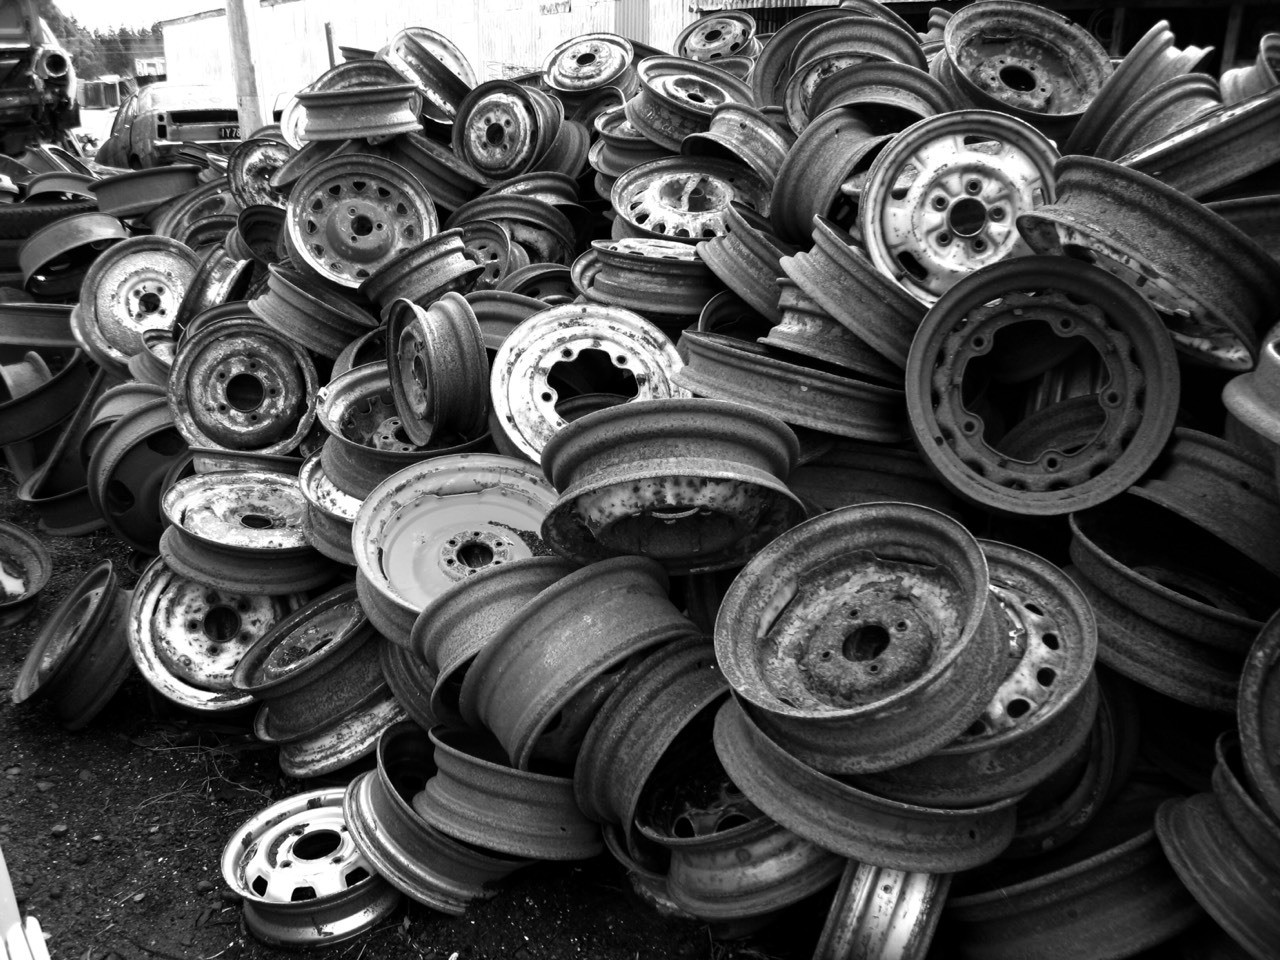 Tireless - rims sit heaped up in a pile waiting to be found, Smash Palace at Horopito north of Ohakune is a giant vehicle junkyard and a boon for those putting older cars back together. Originally a colour image redone to B&W